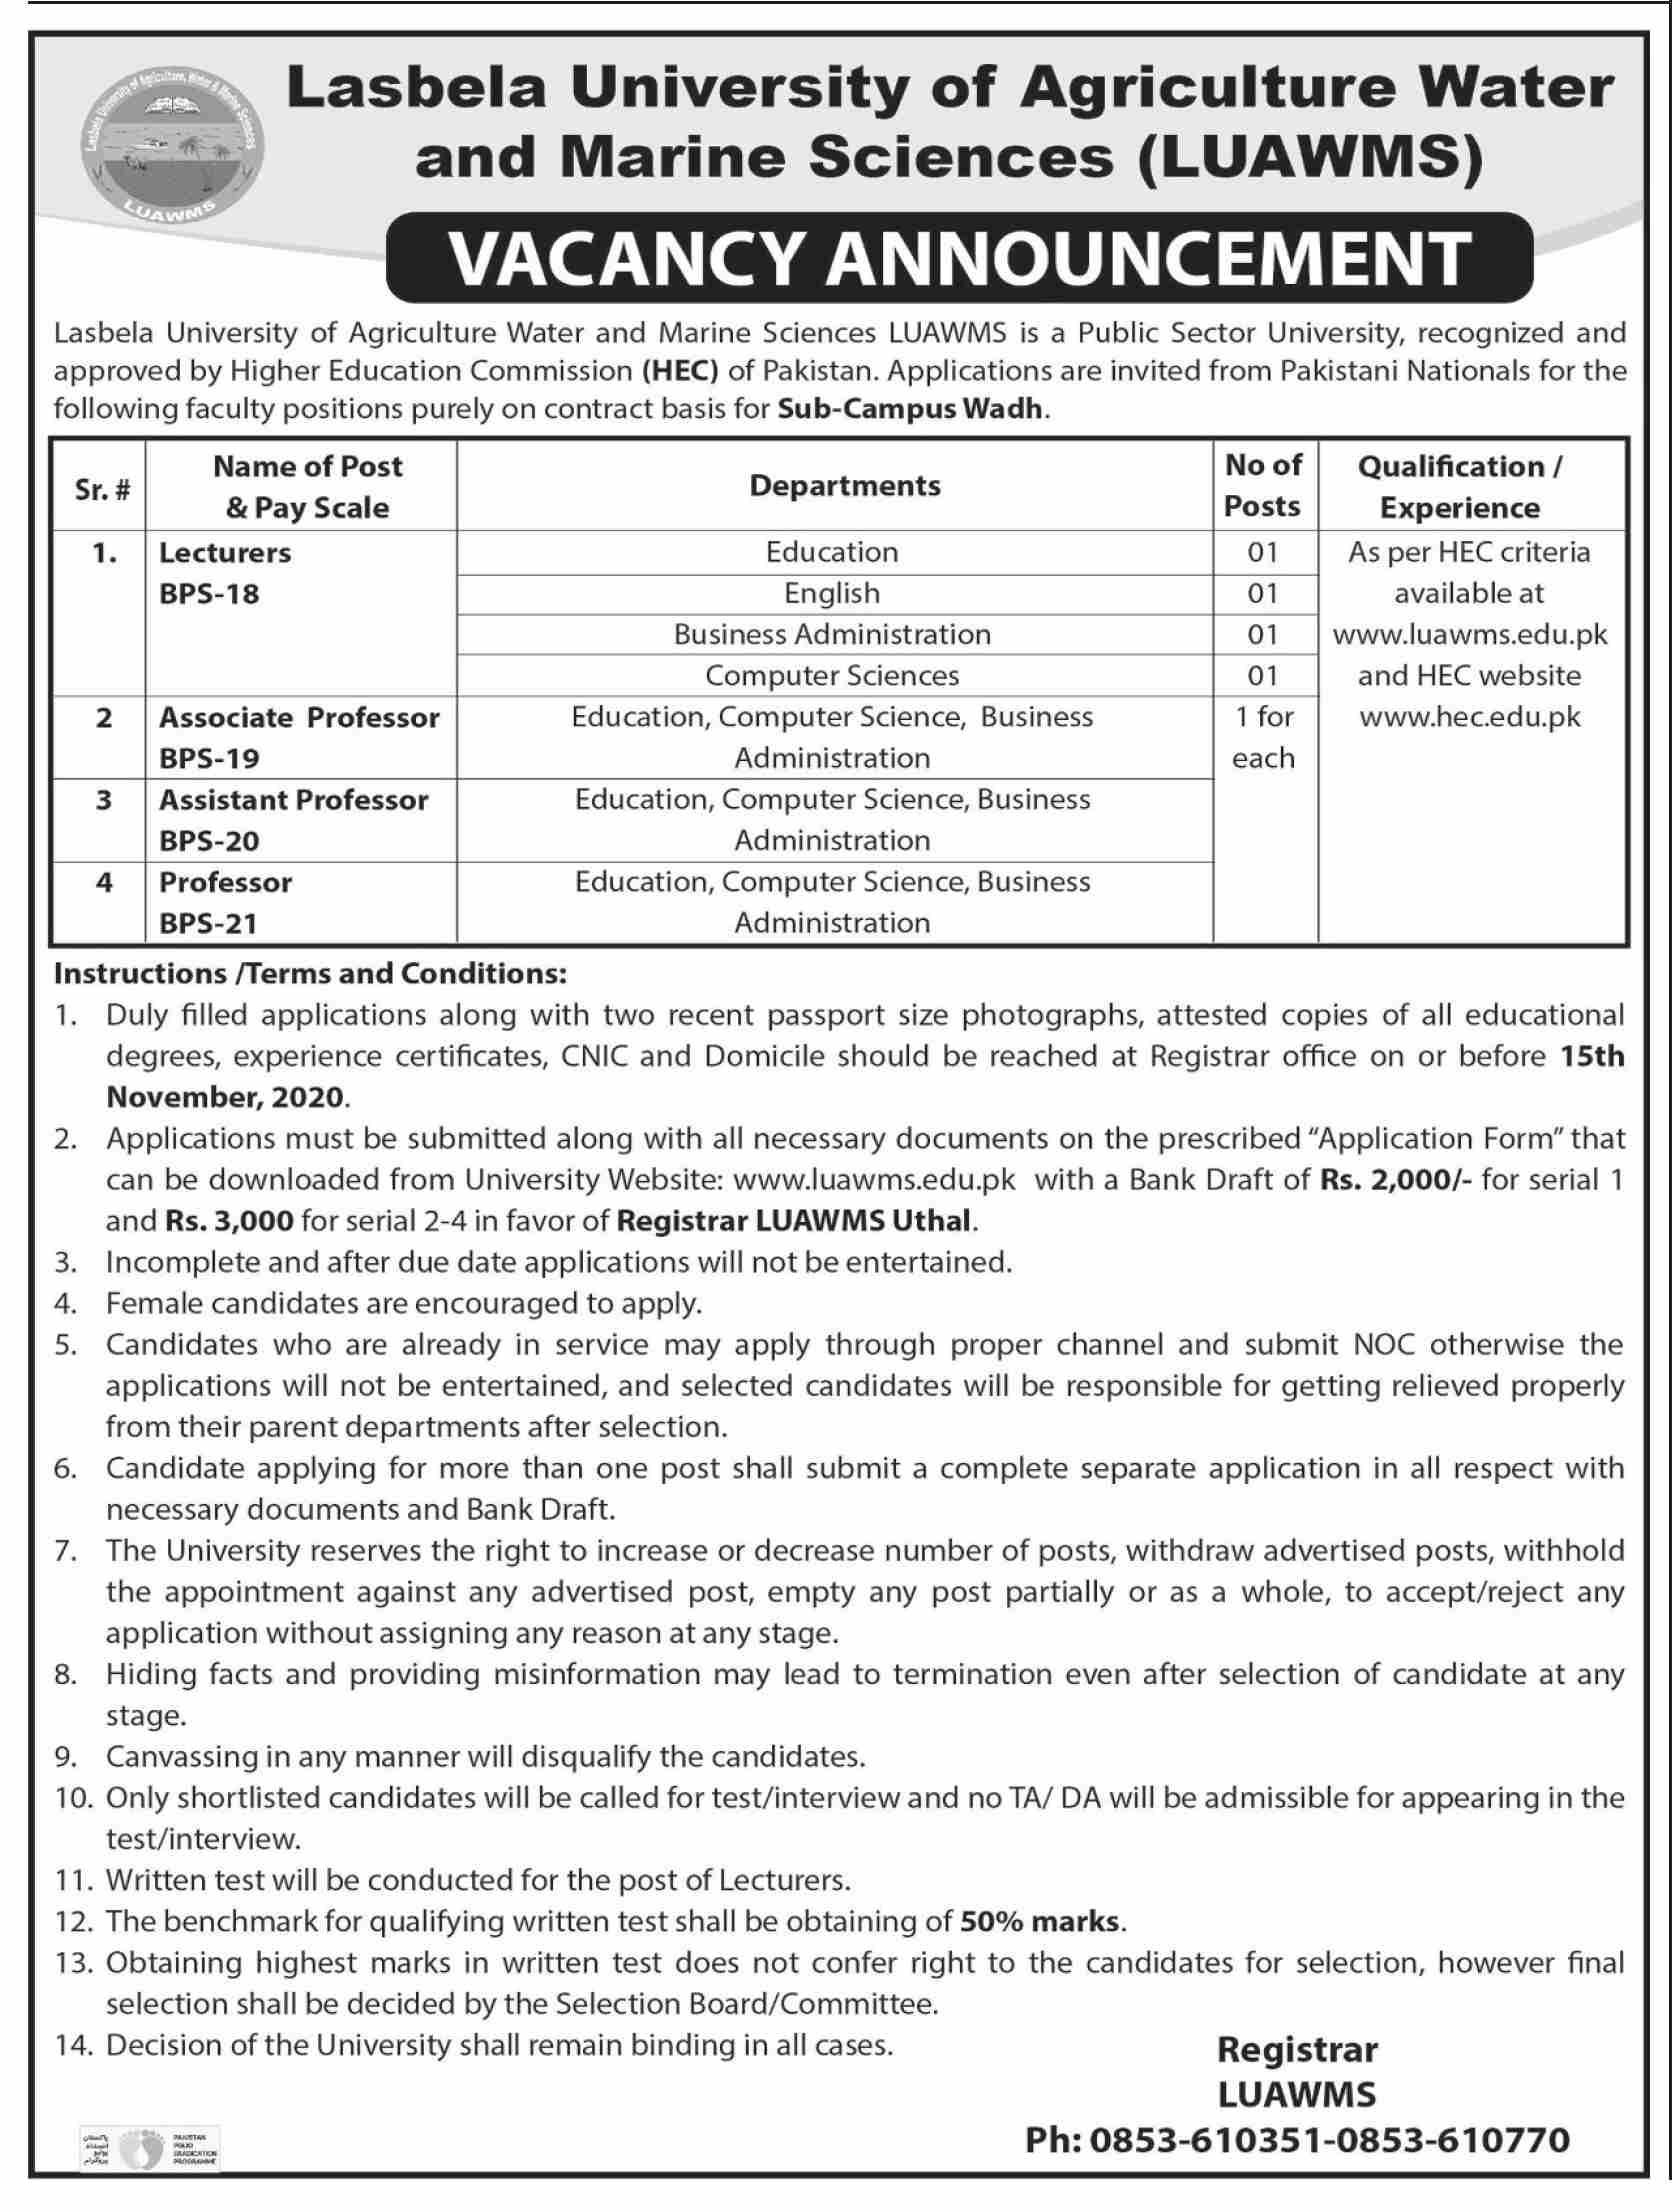 Lasbela University of Agriculture Water and Marine Sciences Jobs October 2020